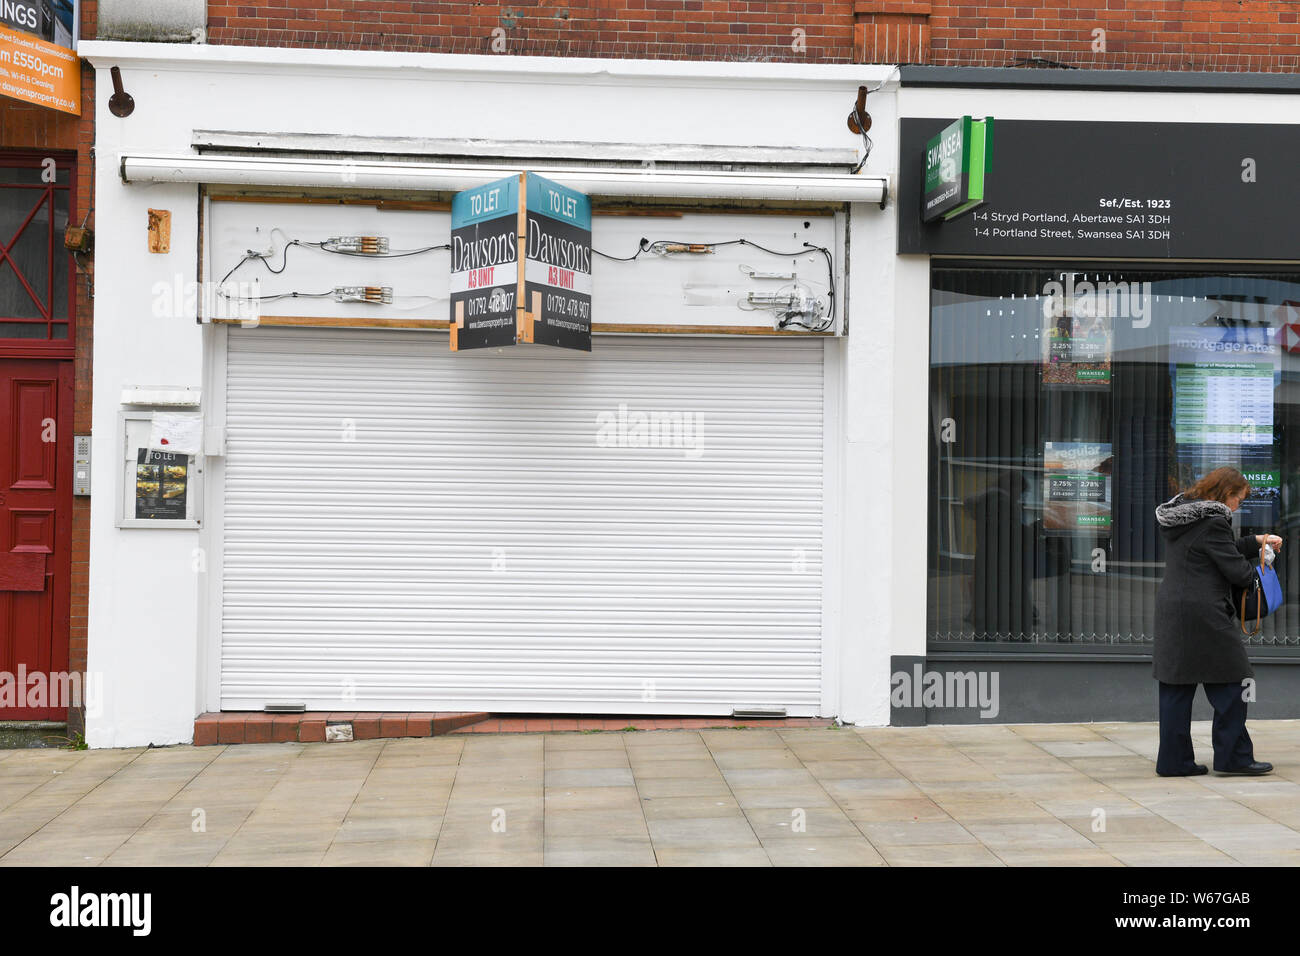 Shutters down over an empt and unused retail outlet on a UK high street. Thousands of shops are closing throughout the UK every week. Stock Photo